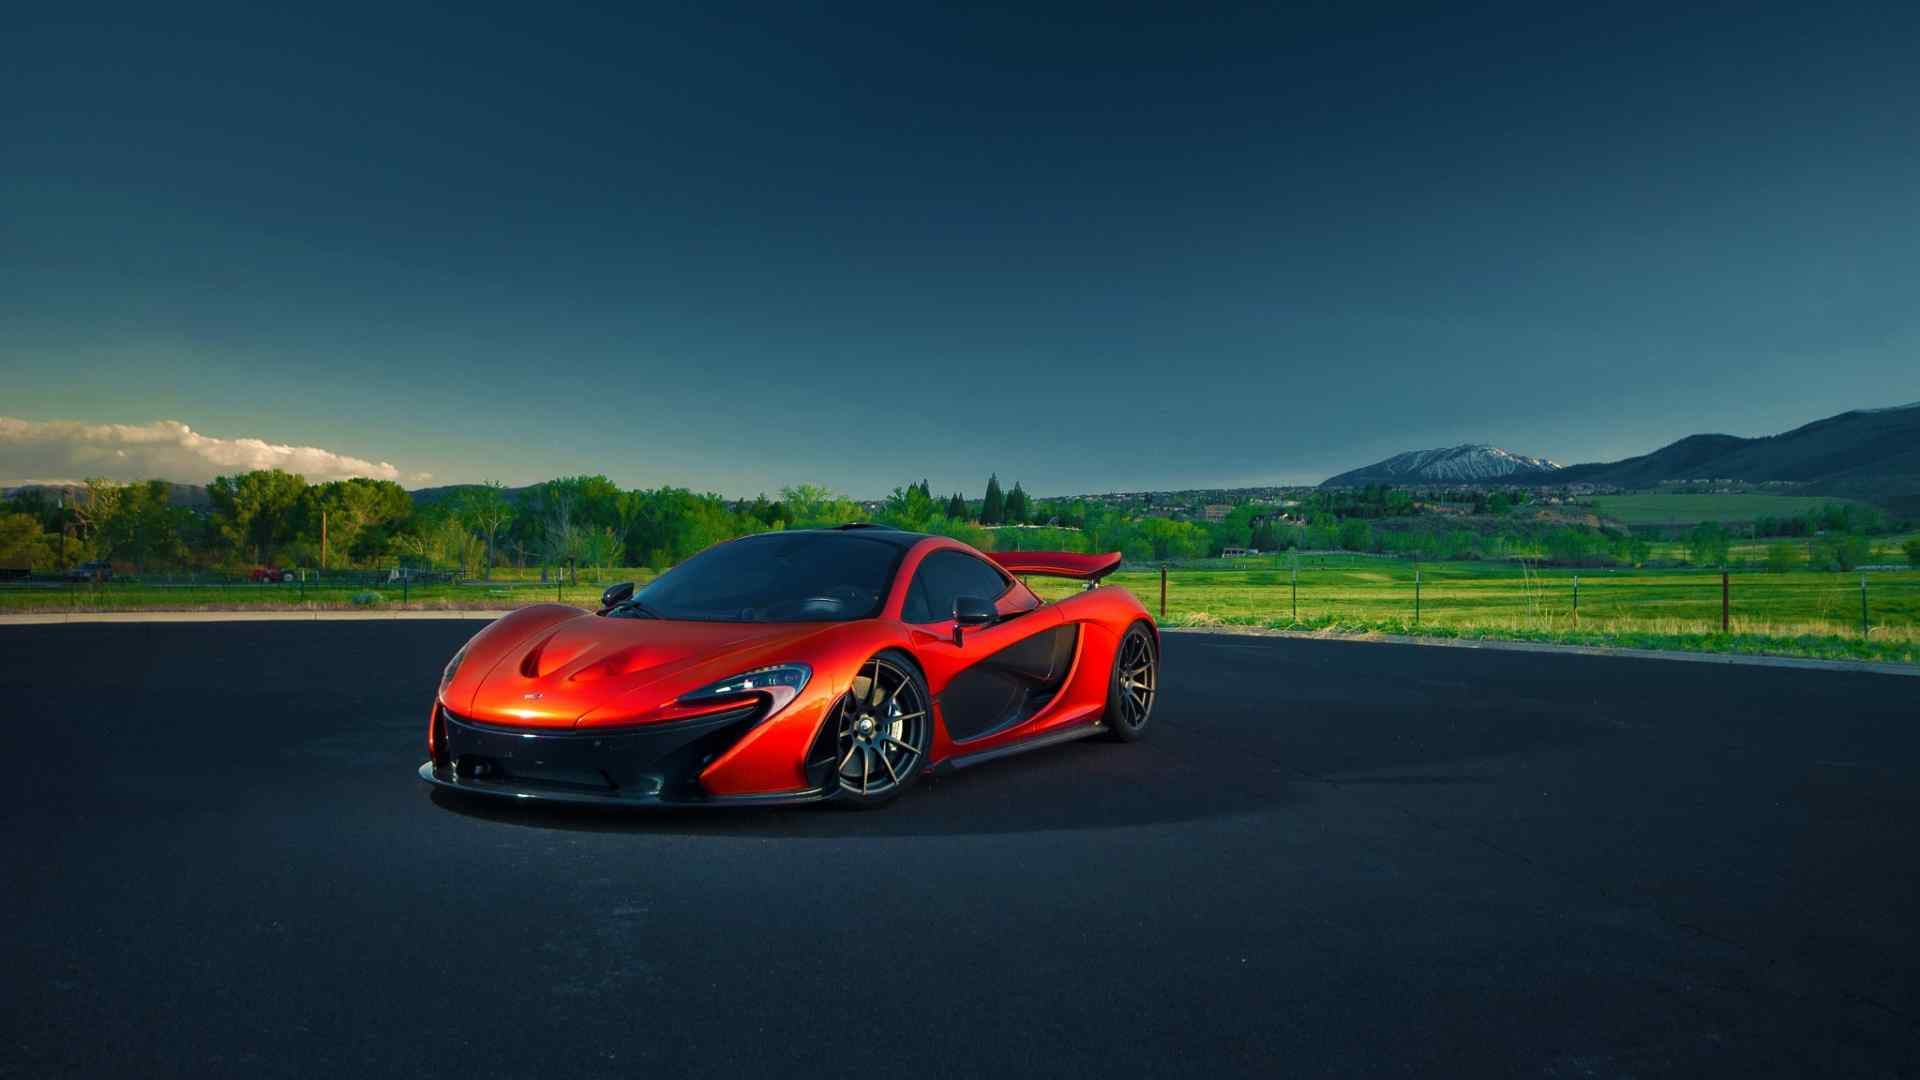 mclaren wallpaper 4k with 91394 on Godmachine Gears Of War 4 Hd 2112 together with 587 Hot Rod Car Hd Wallpaper as well 311069 Roshar Map Wallpaper also A Girl In Fantasy Forest Hd Wallpaper additionally 2018 rolls royce dawn aero cowling 4k 2 Wallpapers.